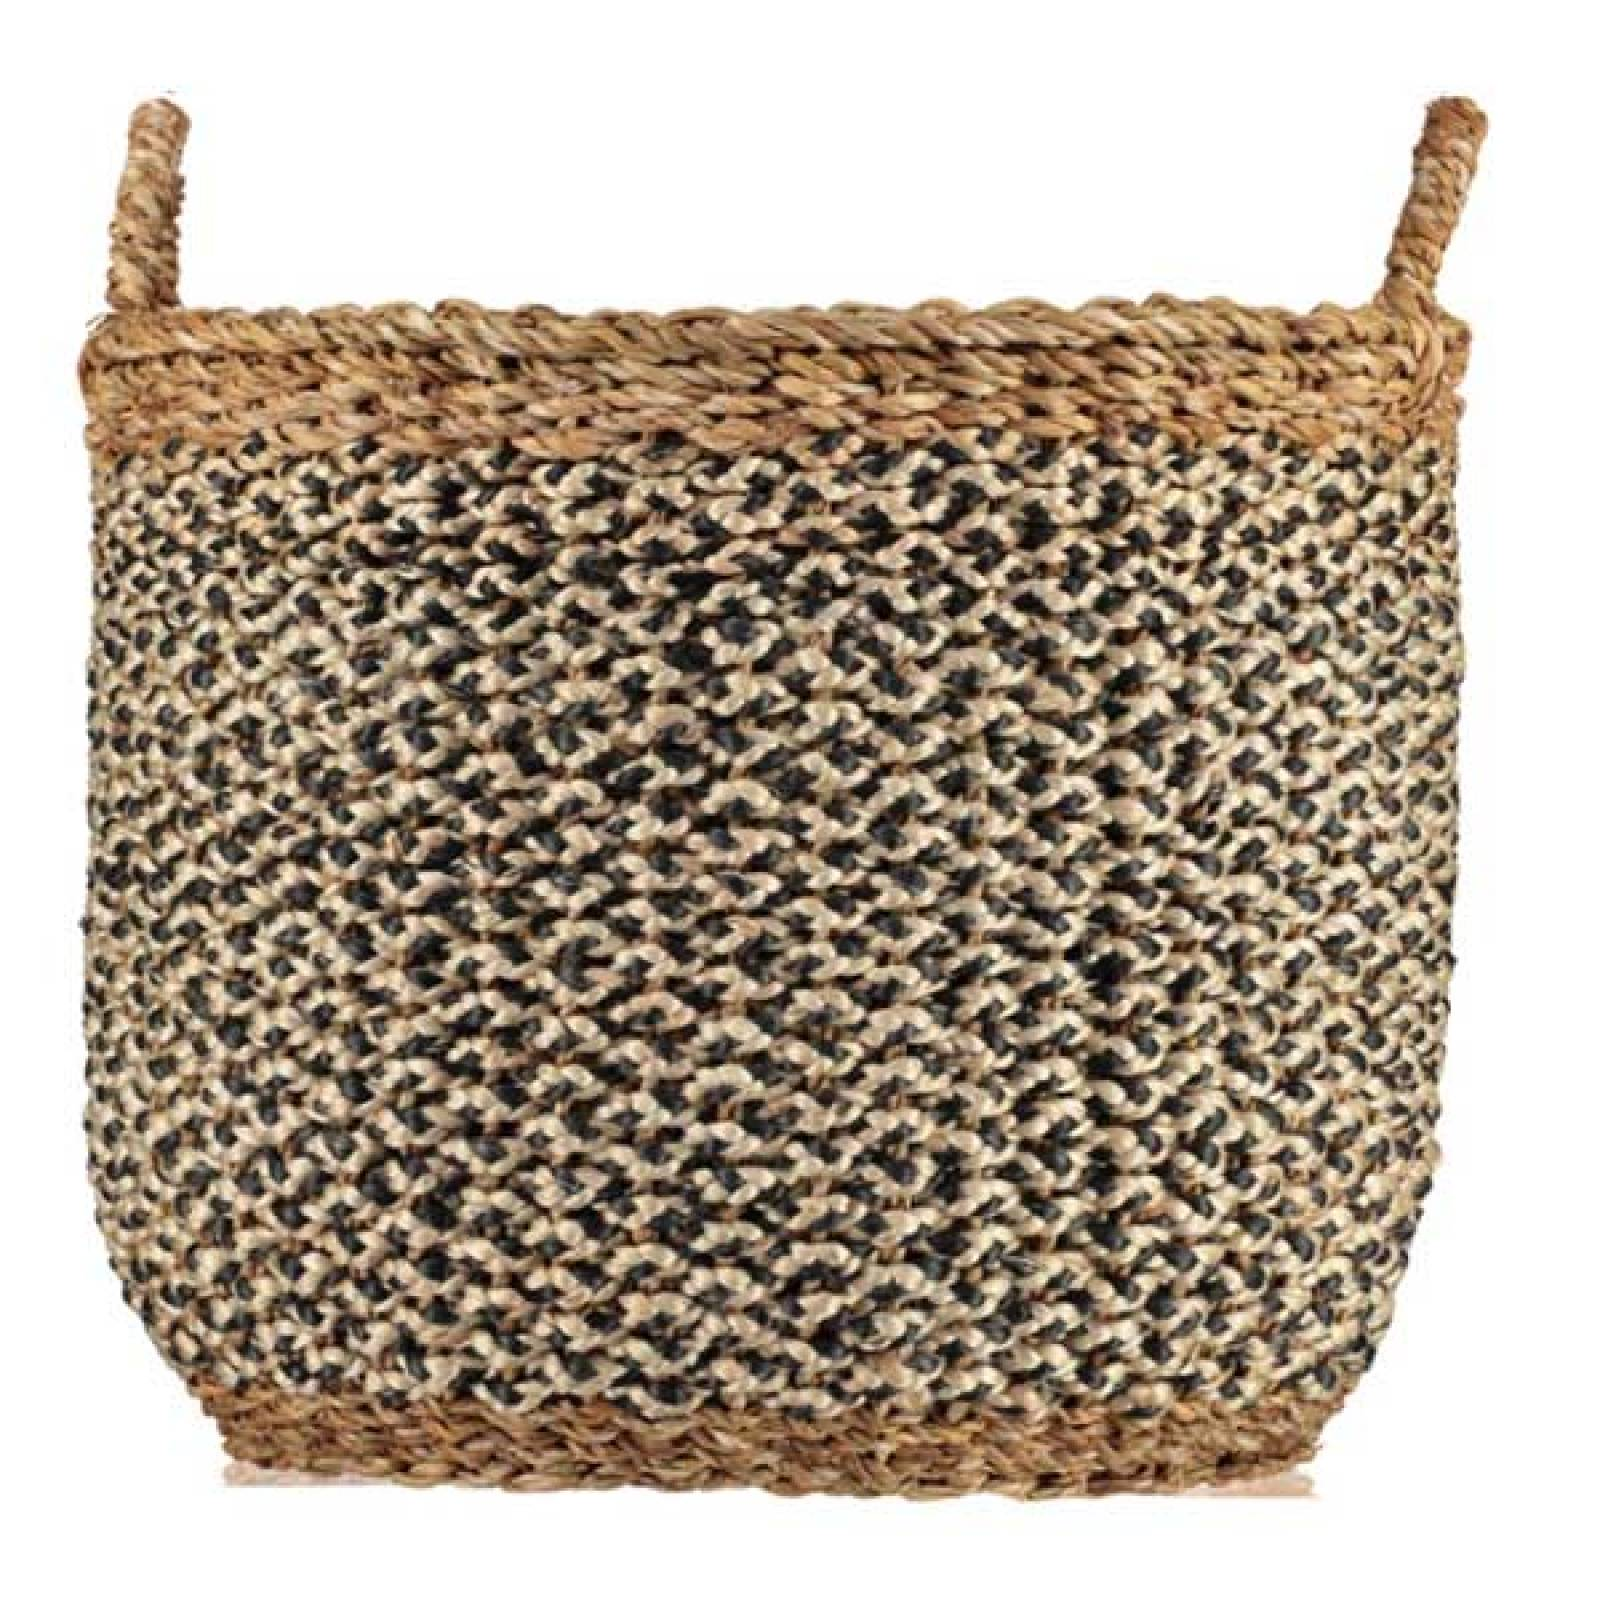 Village Basket Black And White With Natural Handles 46x40cm